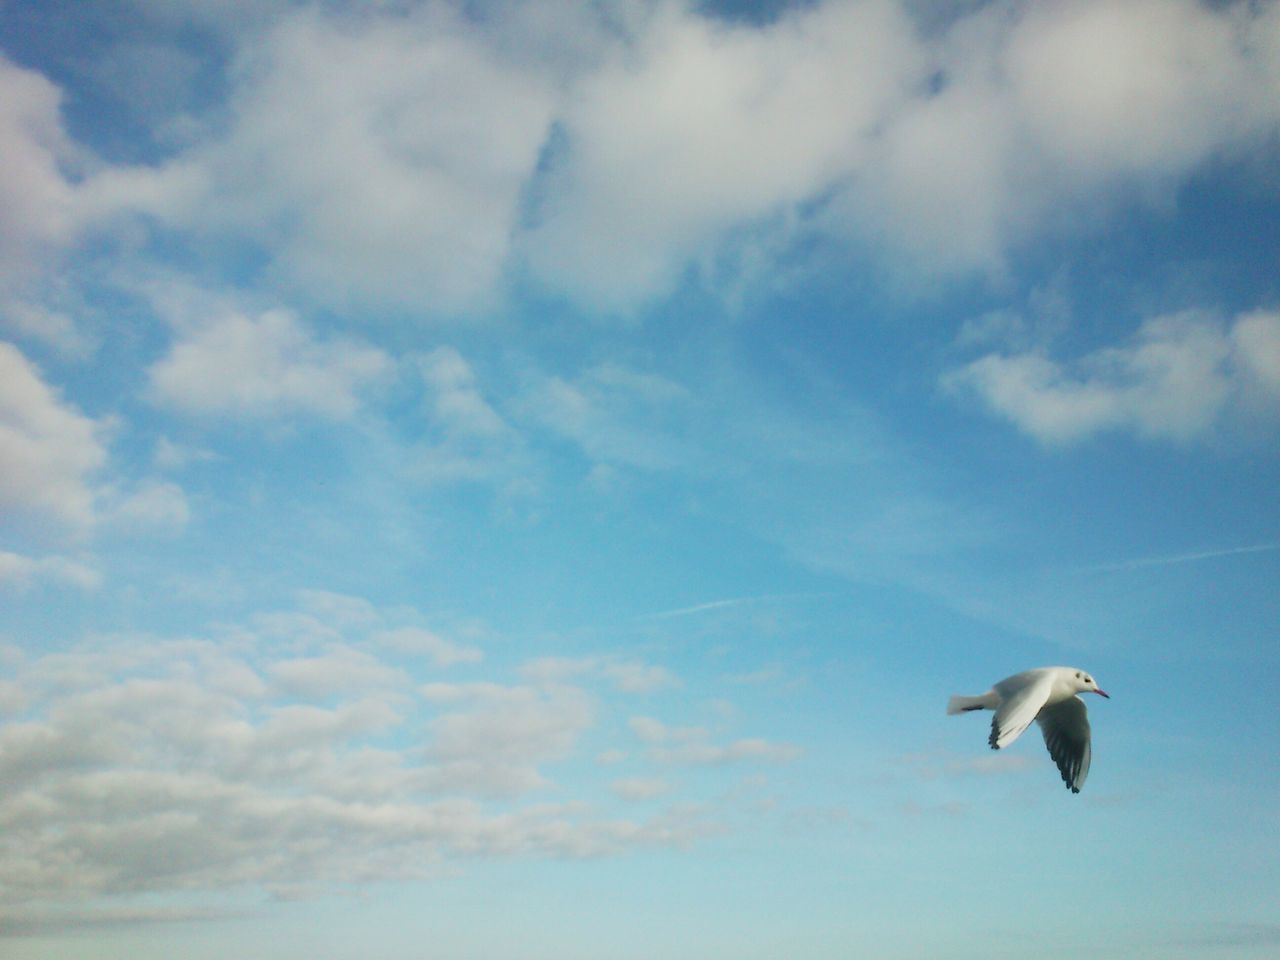 flying, bird, cloud - sky, animal themes, sky, animals in the wild, one animal, spread wings, mid-air, low angle view, seagull, nature, animal wildlife, day, motion, beauty in nature, no people, outdoors